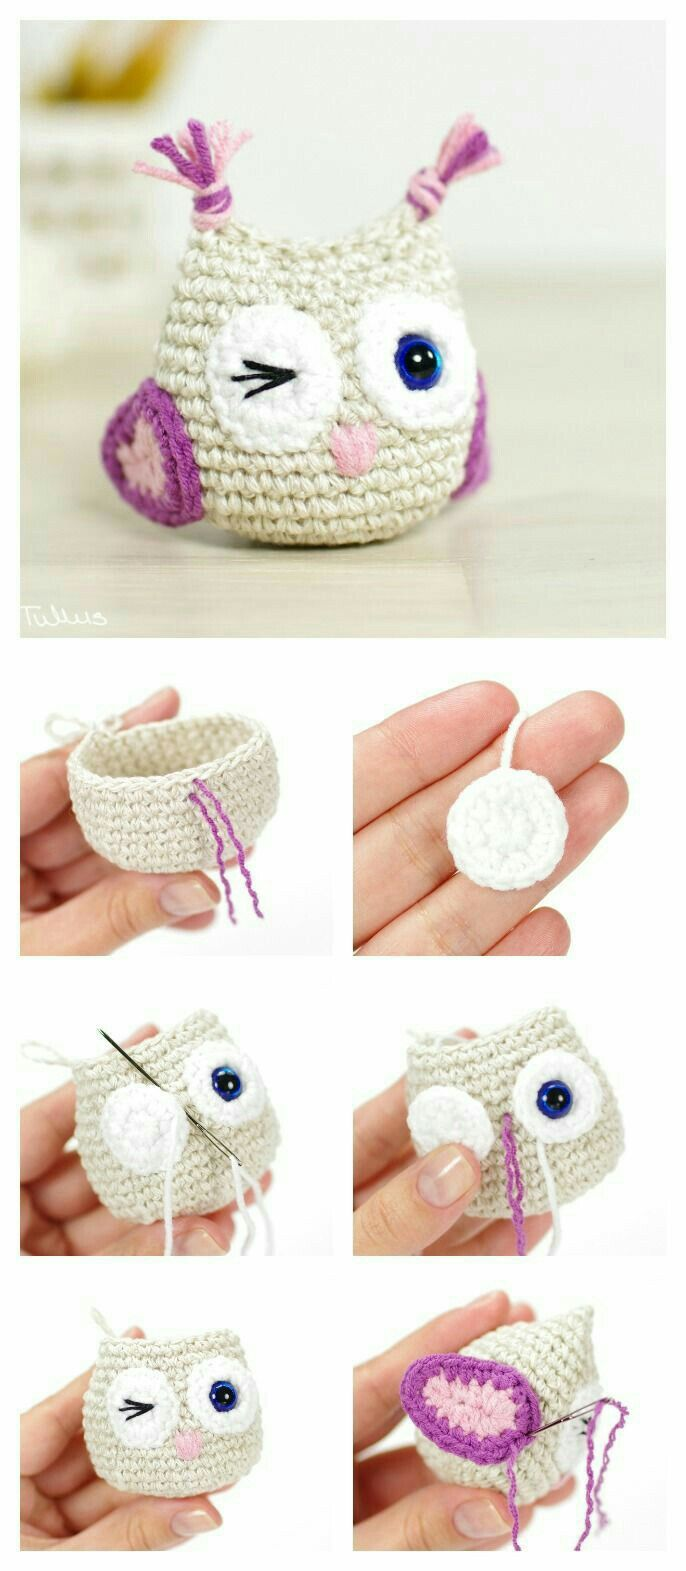 357 best croché images on Pinterest | Arm knitting, Knit crochet and ...